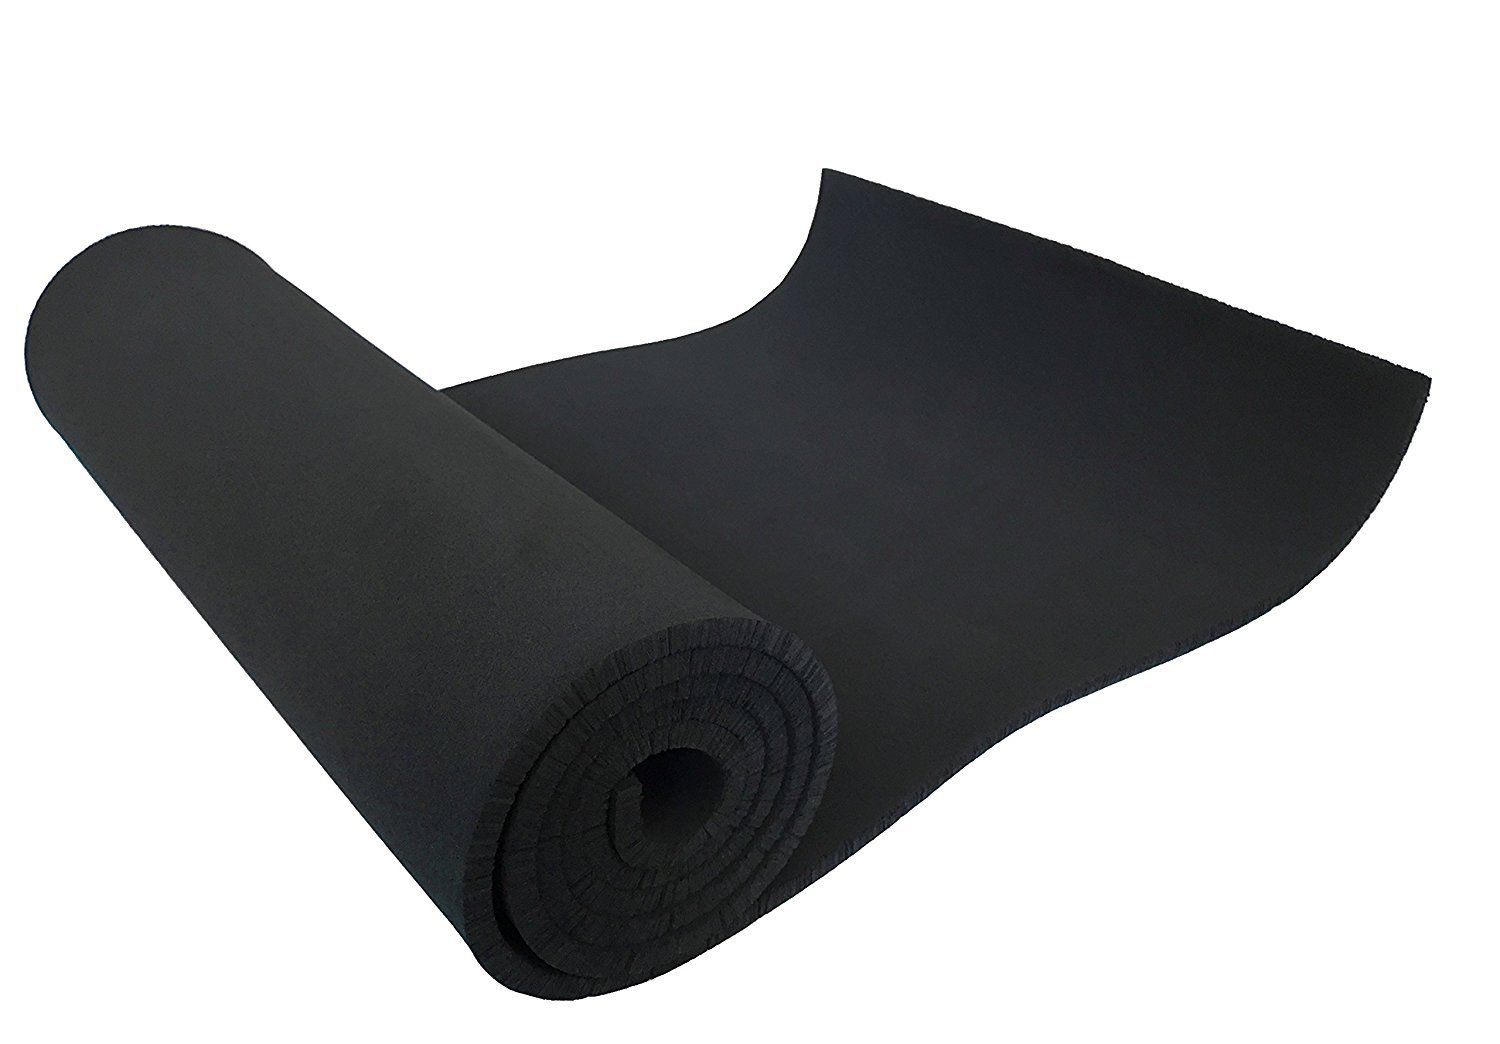 Amazon Com Xcel Neoprene Foam Sheet 54 Wide X 12 Length X 1 4 Soft Medium For Cosplay Costume Padding Diy An Foam Rubber Sheet Neoprene Rubber Rubber